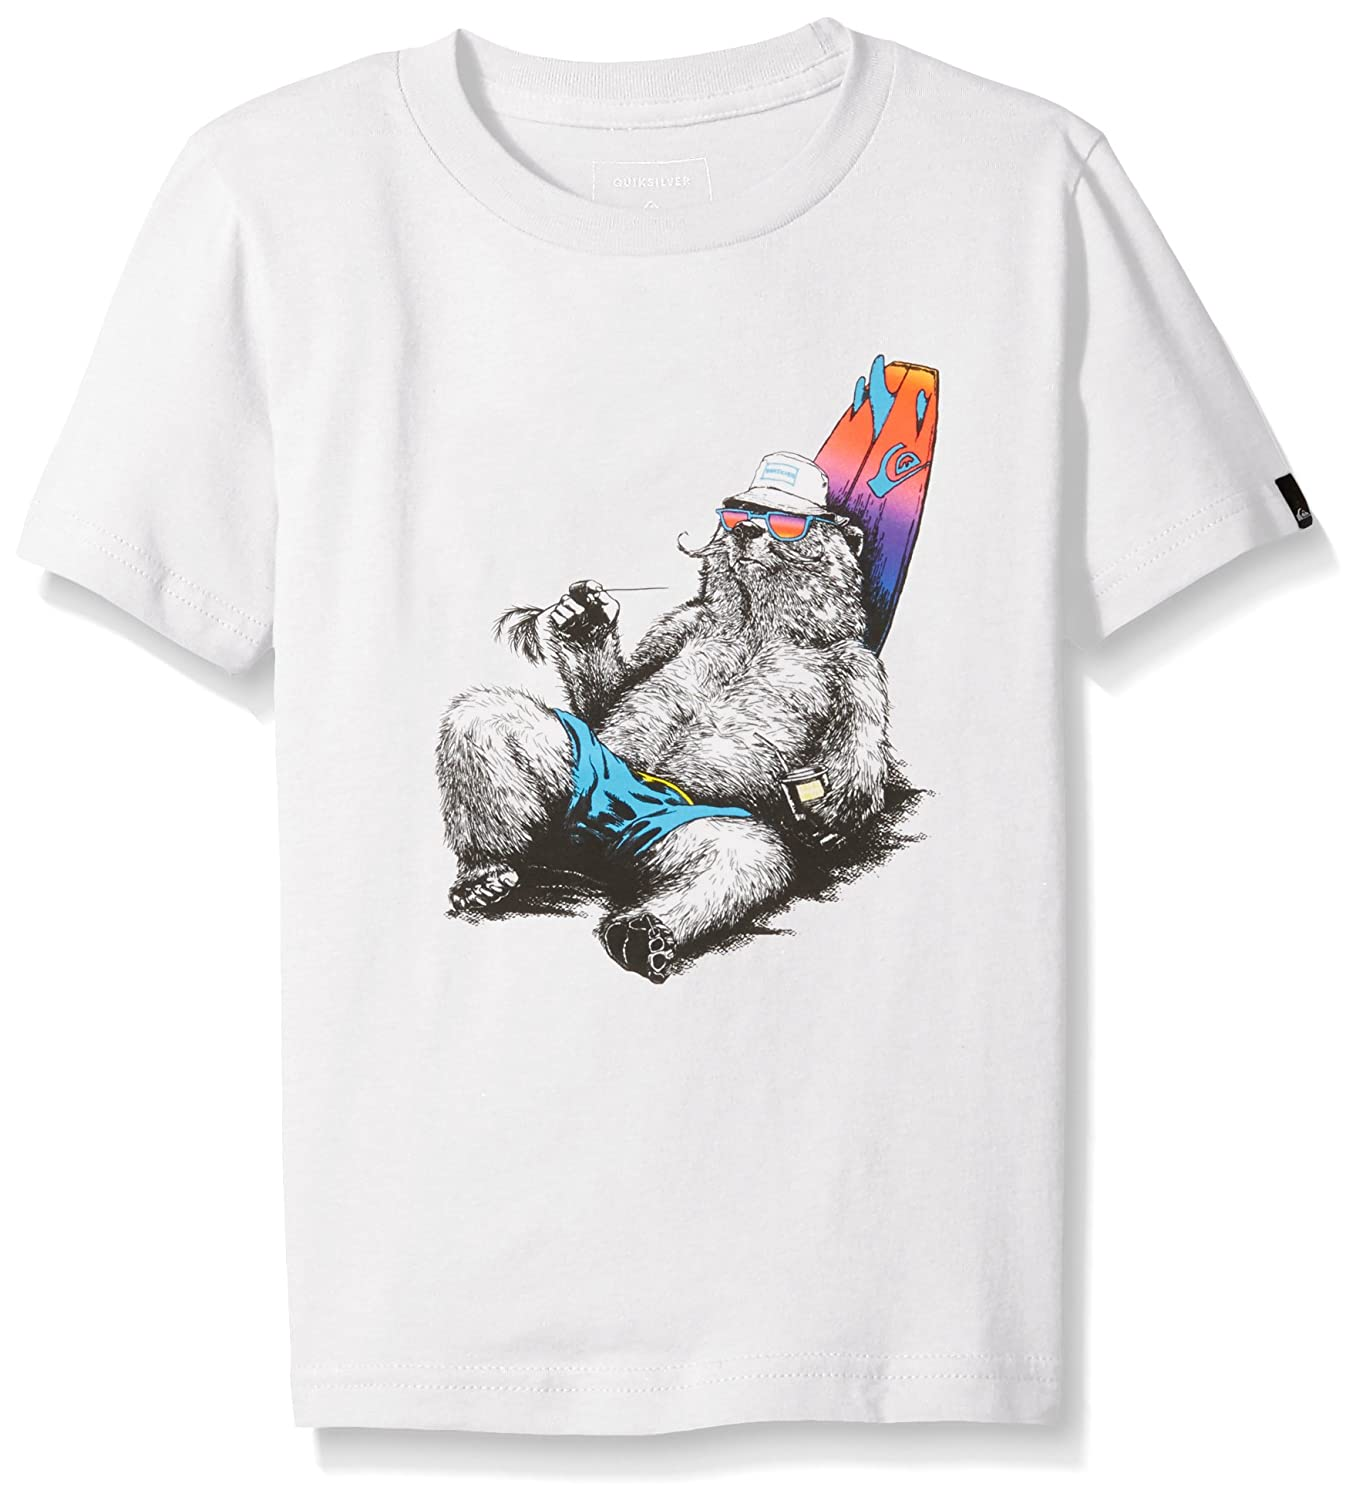 Quiksilver Boys' Short Sleeve Graphic Tee for sale